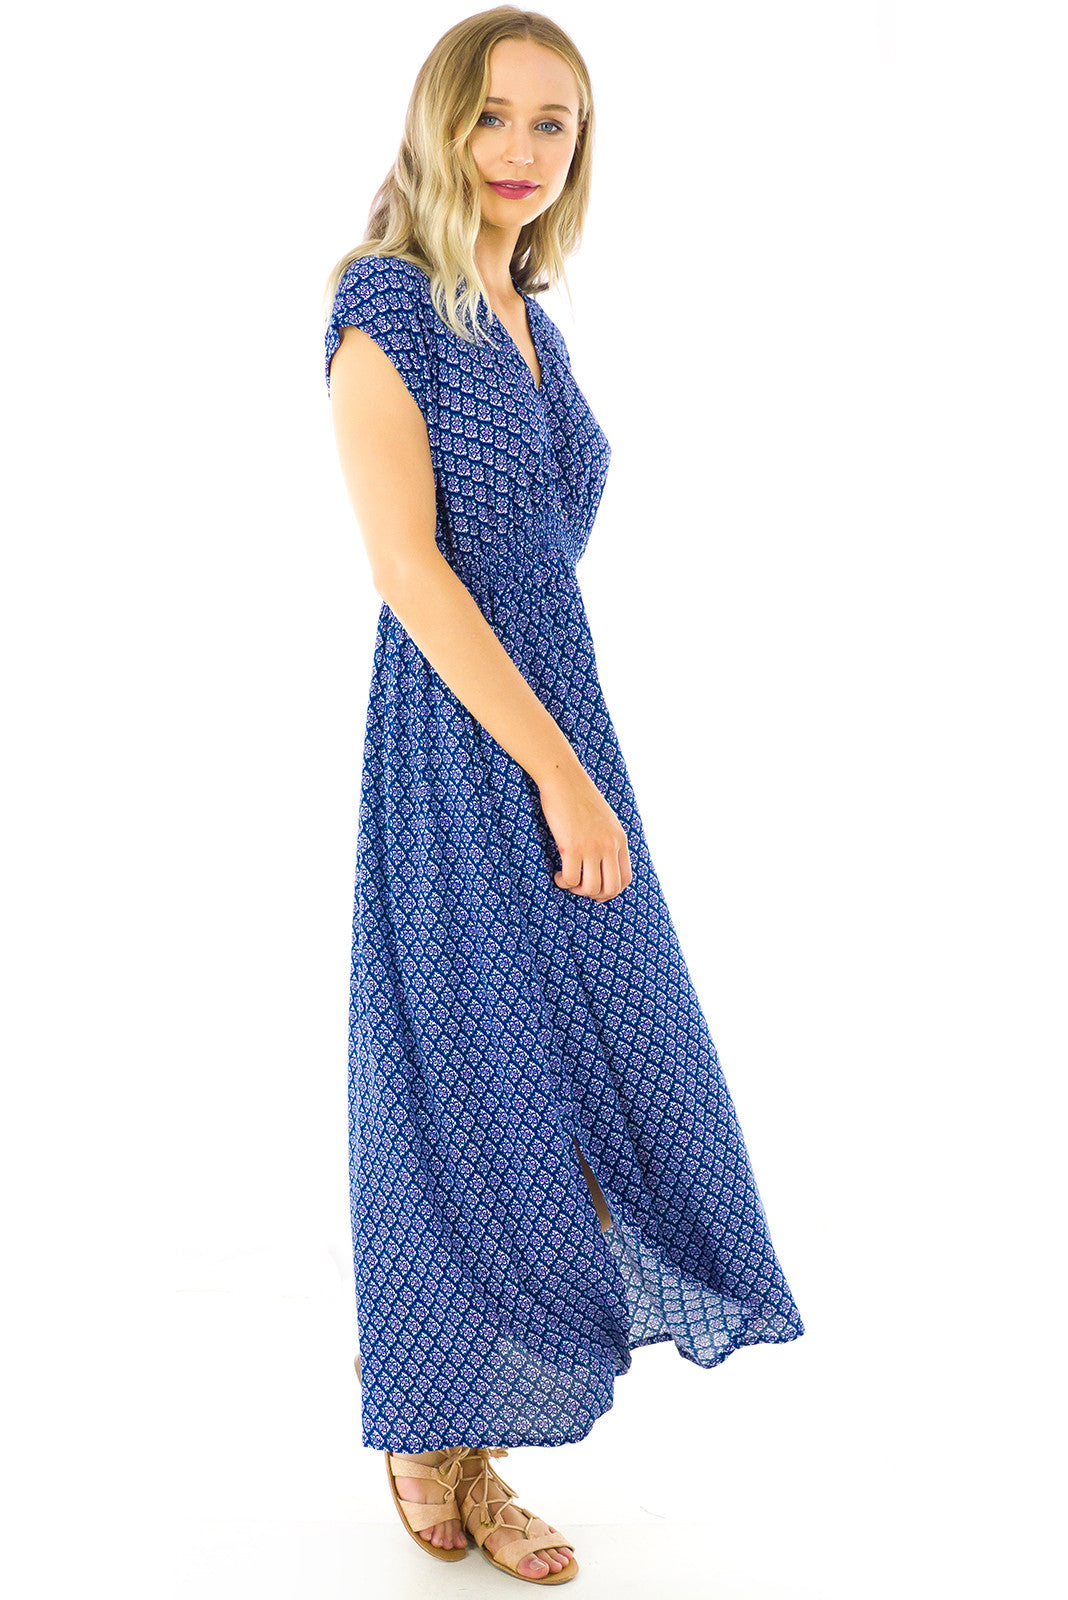 Stevie Winter Mist Maxi Dress in Navy